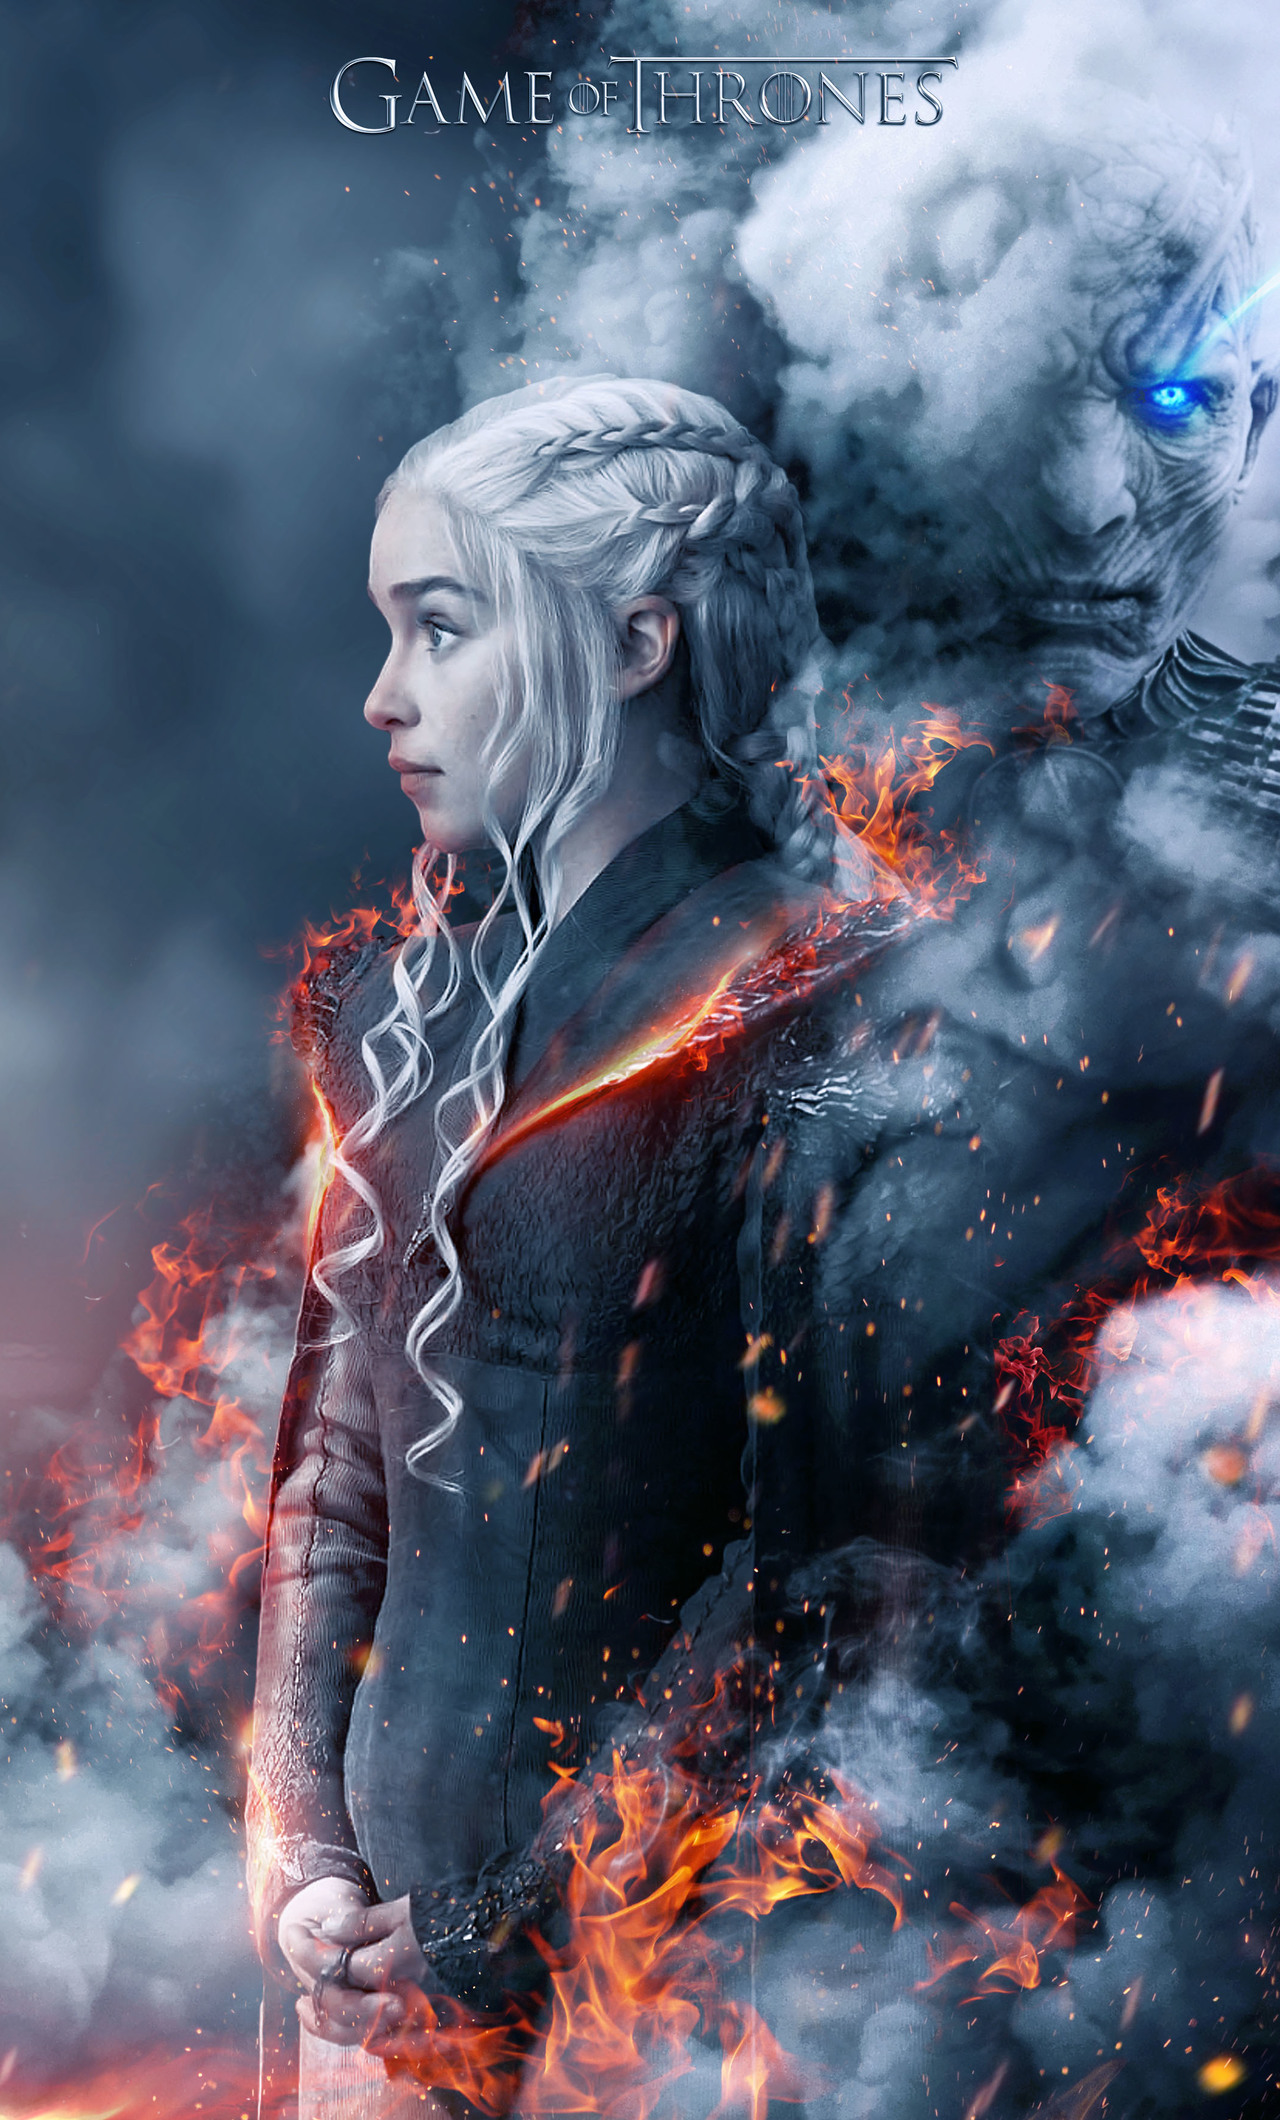 game-of-thrones-season-8-fan-poster-jw-1280x2120.jpg